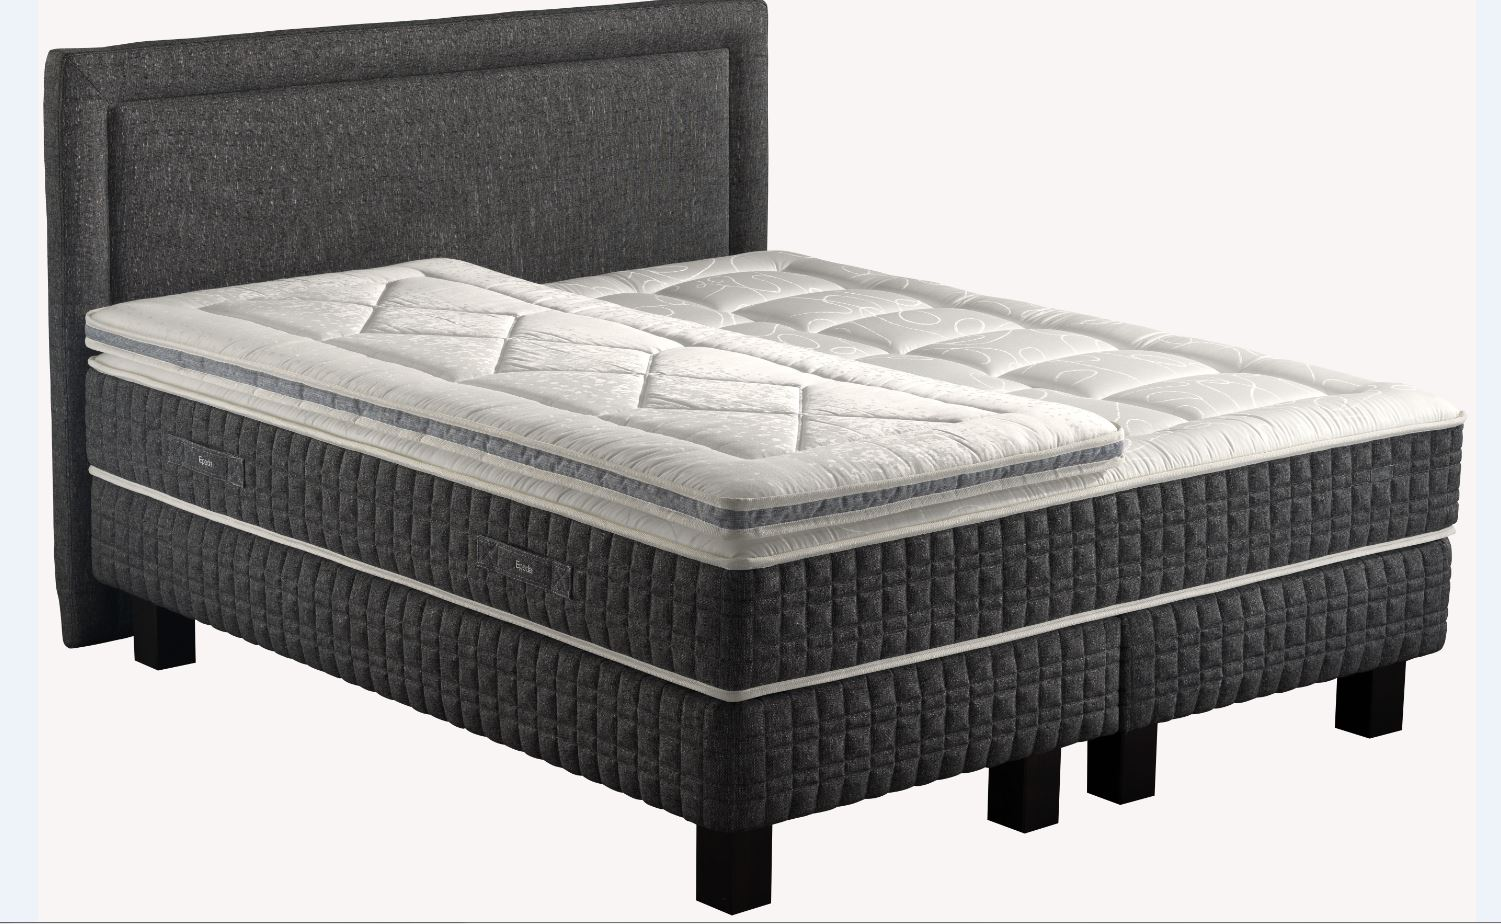 literie haut de gamme simmons lit et matelas haut de. Black Bedroom Furniture Sets. Home Design Ideas